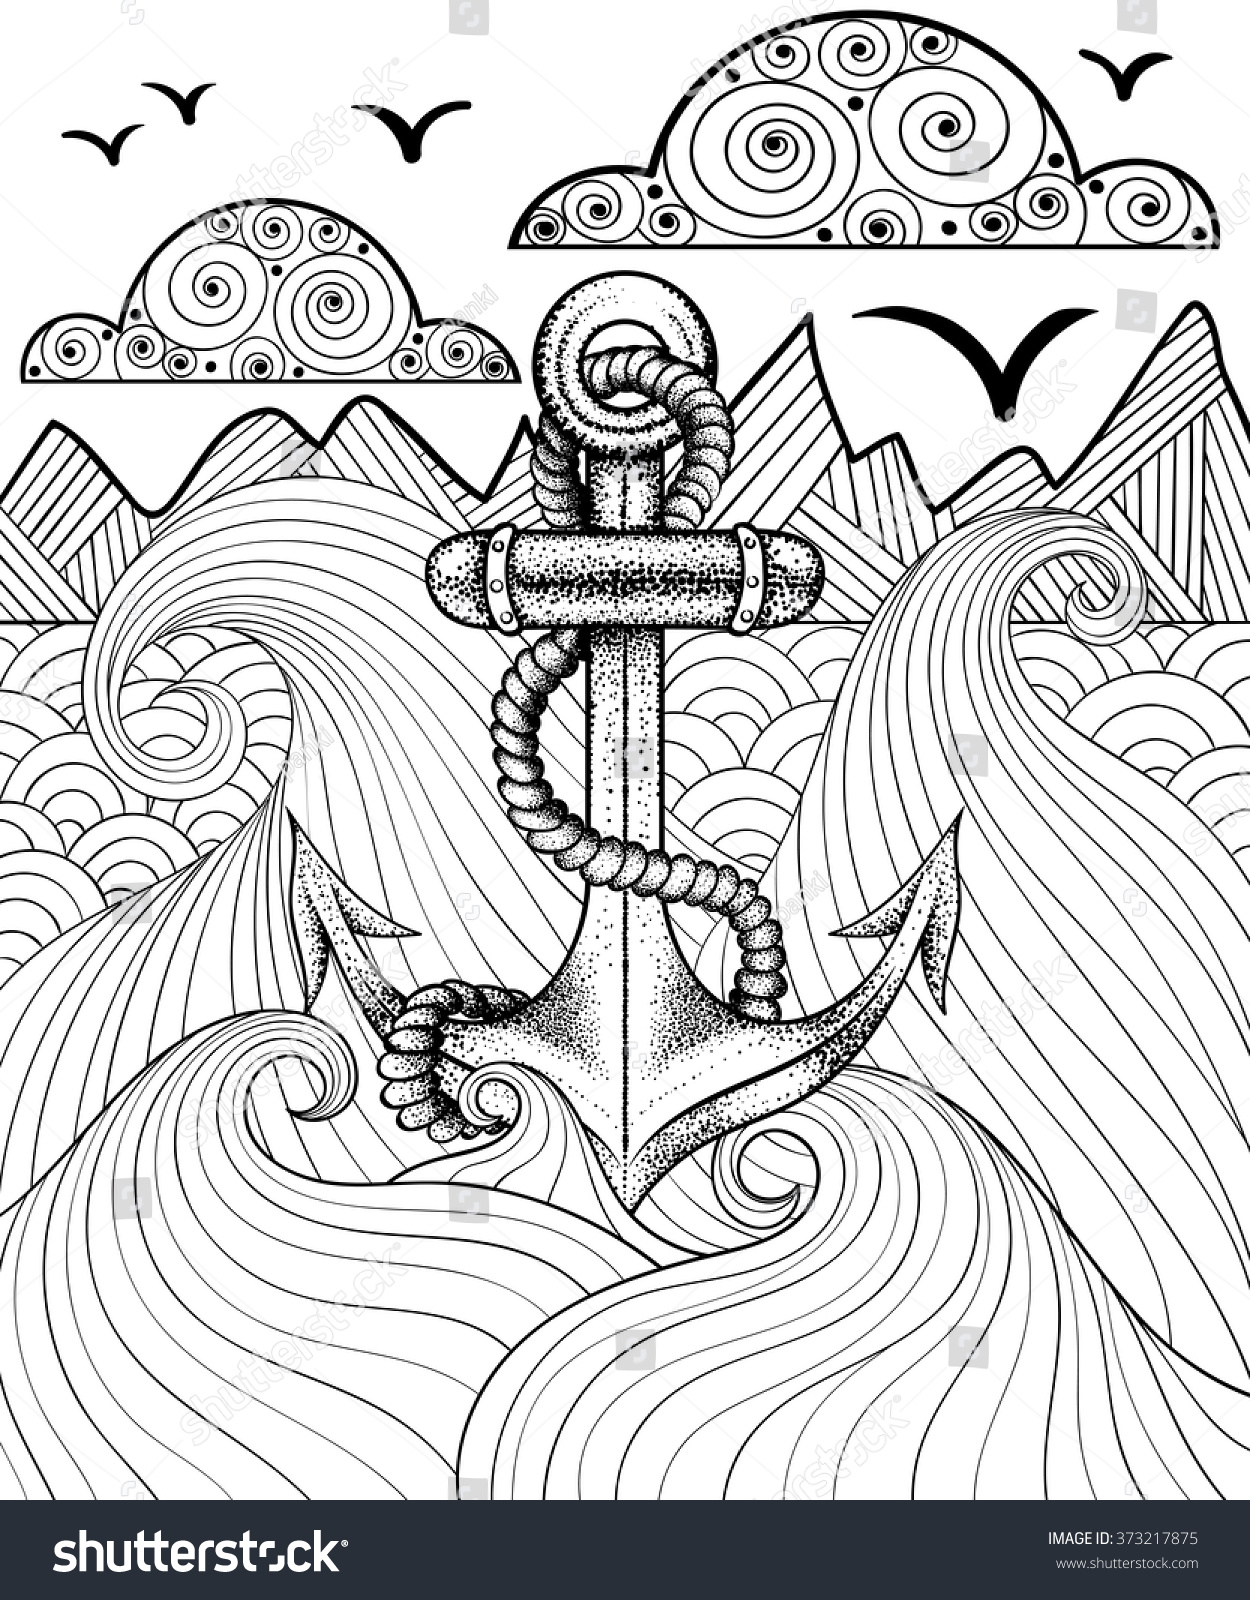 Coloring pages for adults zentangle - Vector Zentangle Print For Adult Coloring Page Hand Drawn Artistically Ethnic Ornamental Patterned Sea Anchor